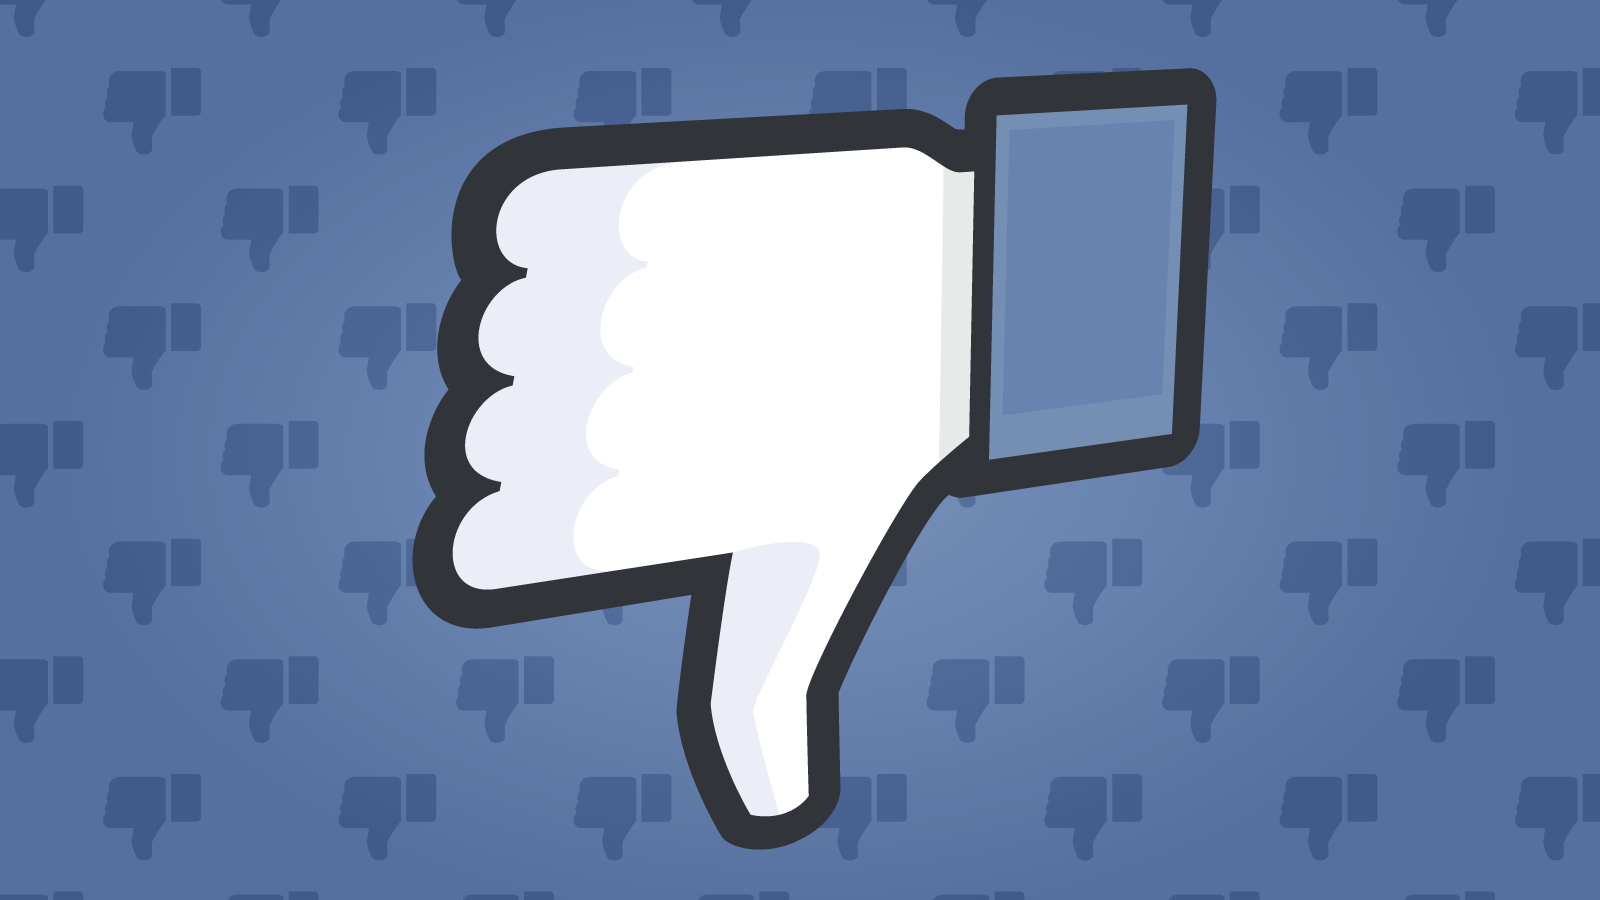 Facebook starts rolling out 'downvote' button